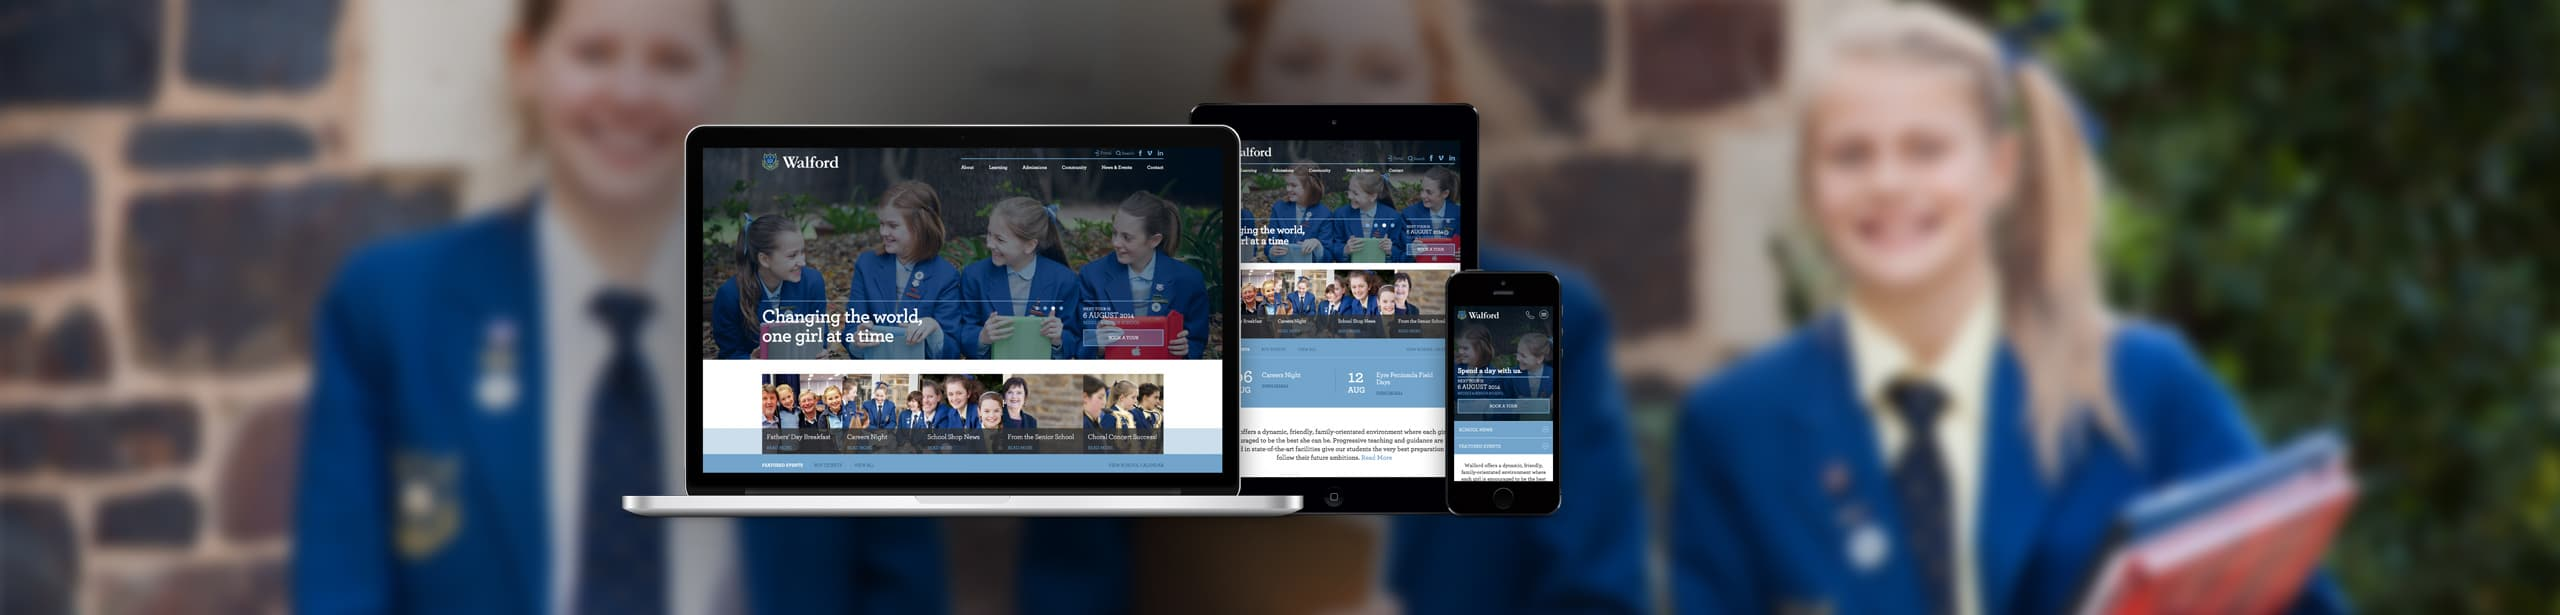 Walford Anglican Girls School - Website